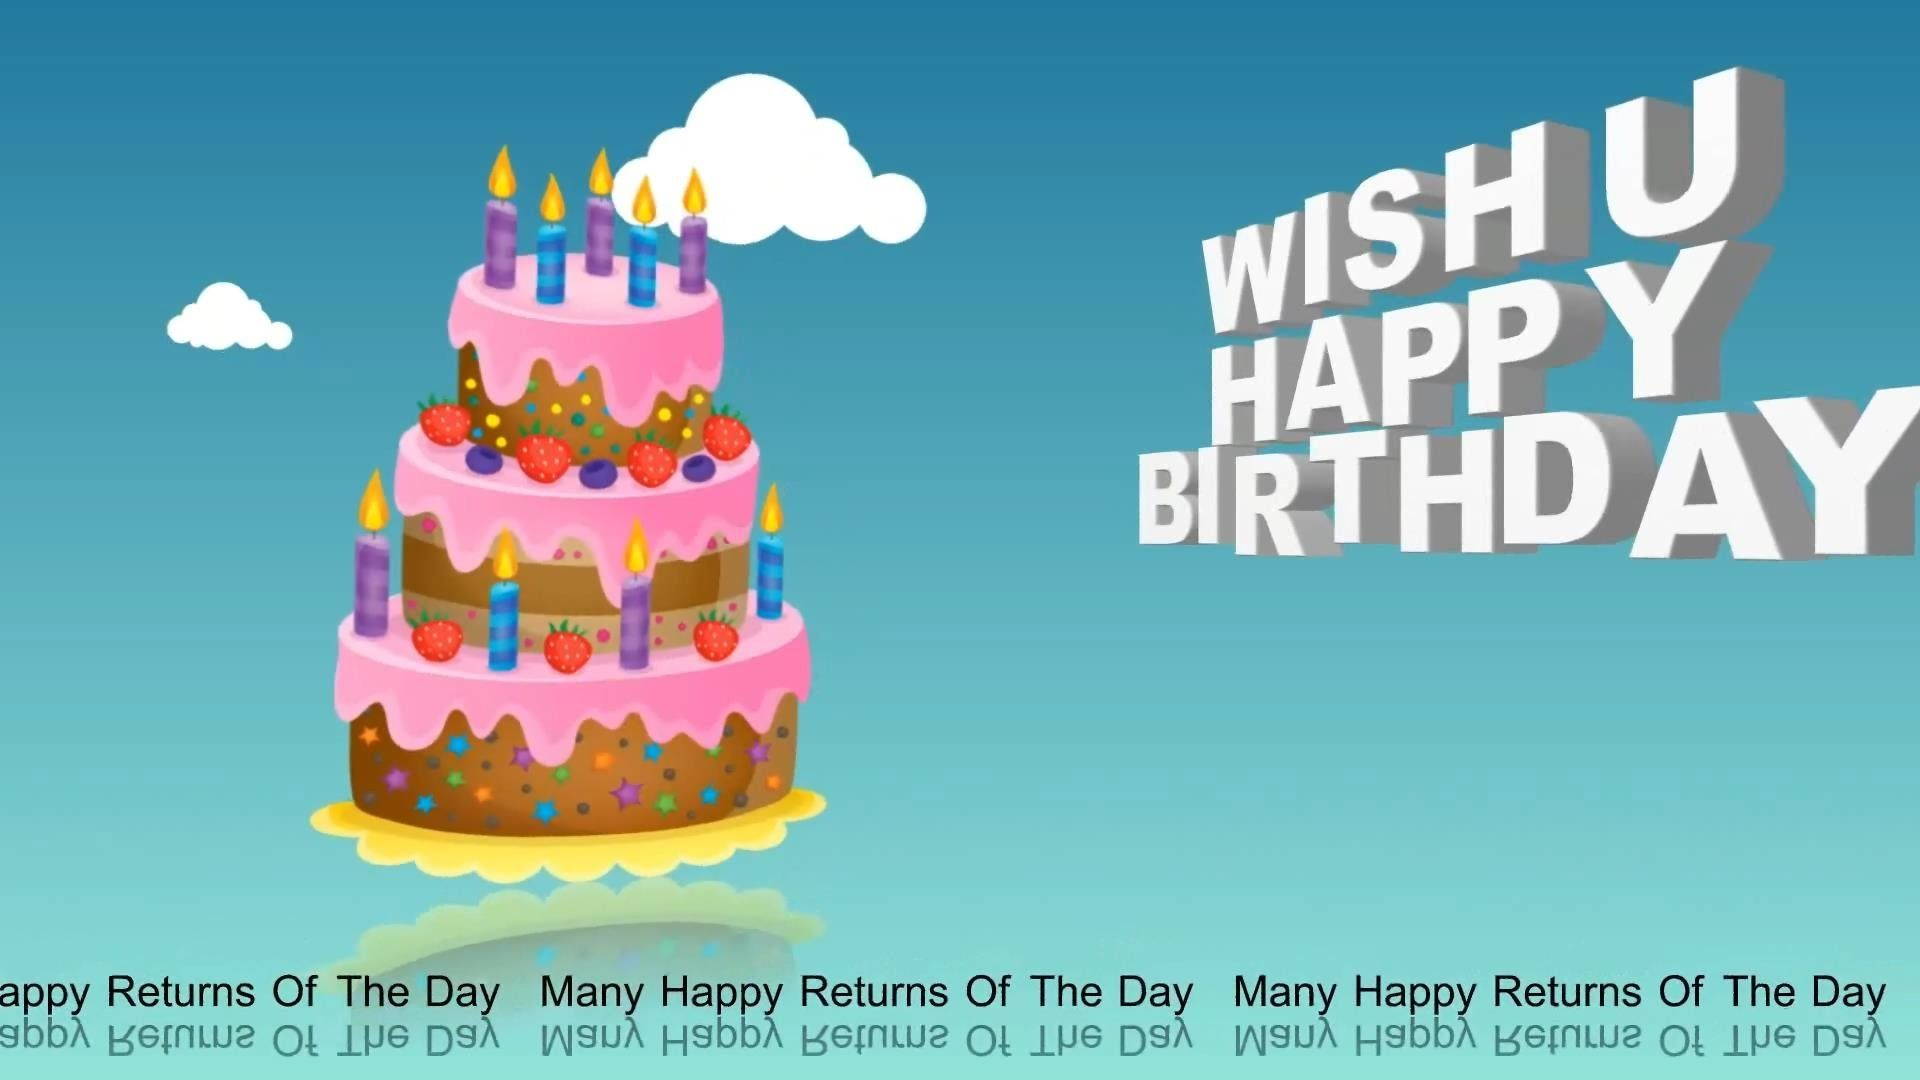 15 Happy Birthday Images Video Download Images Party Pinterest